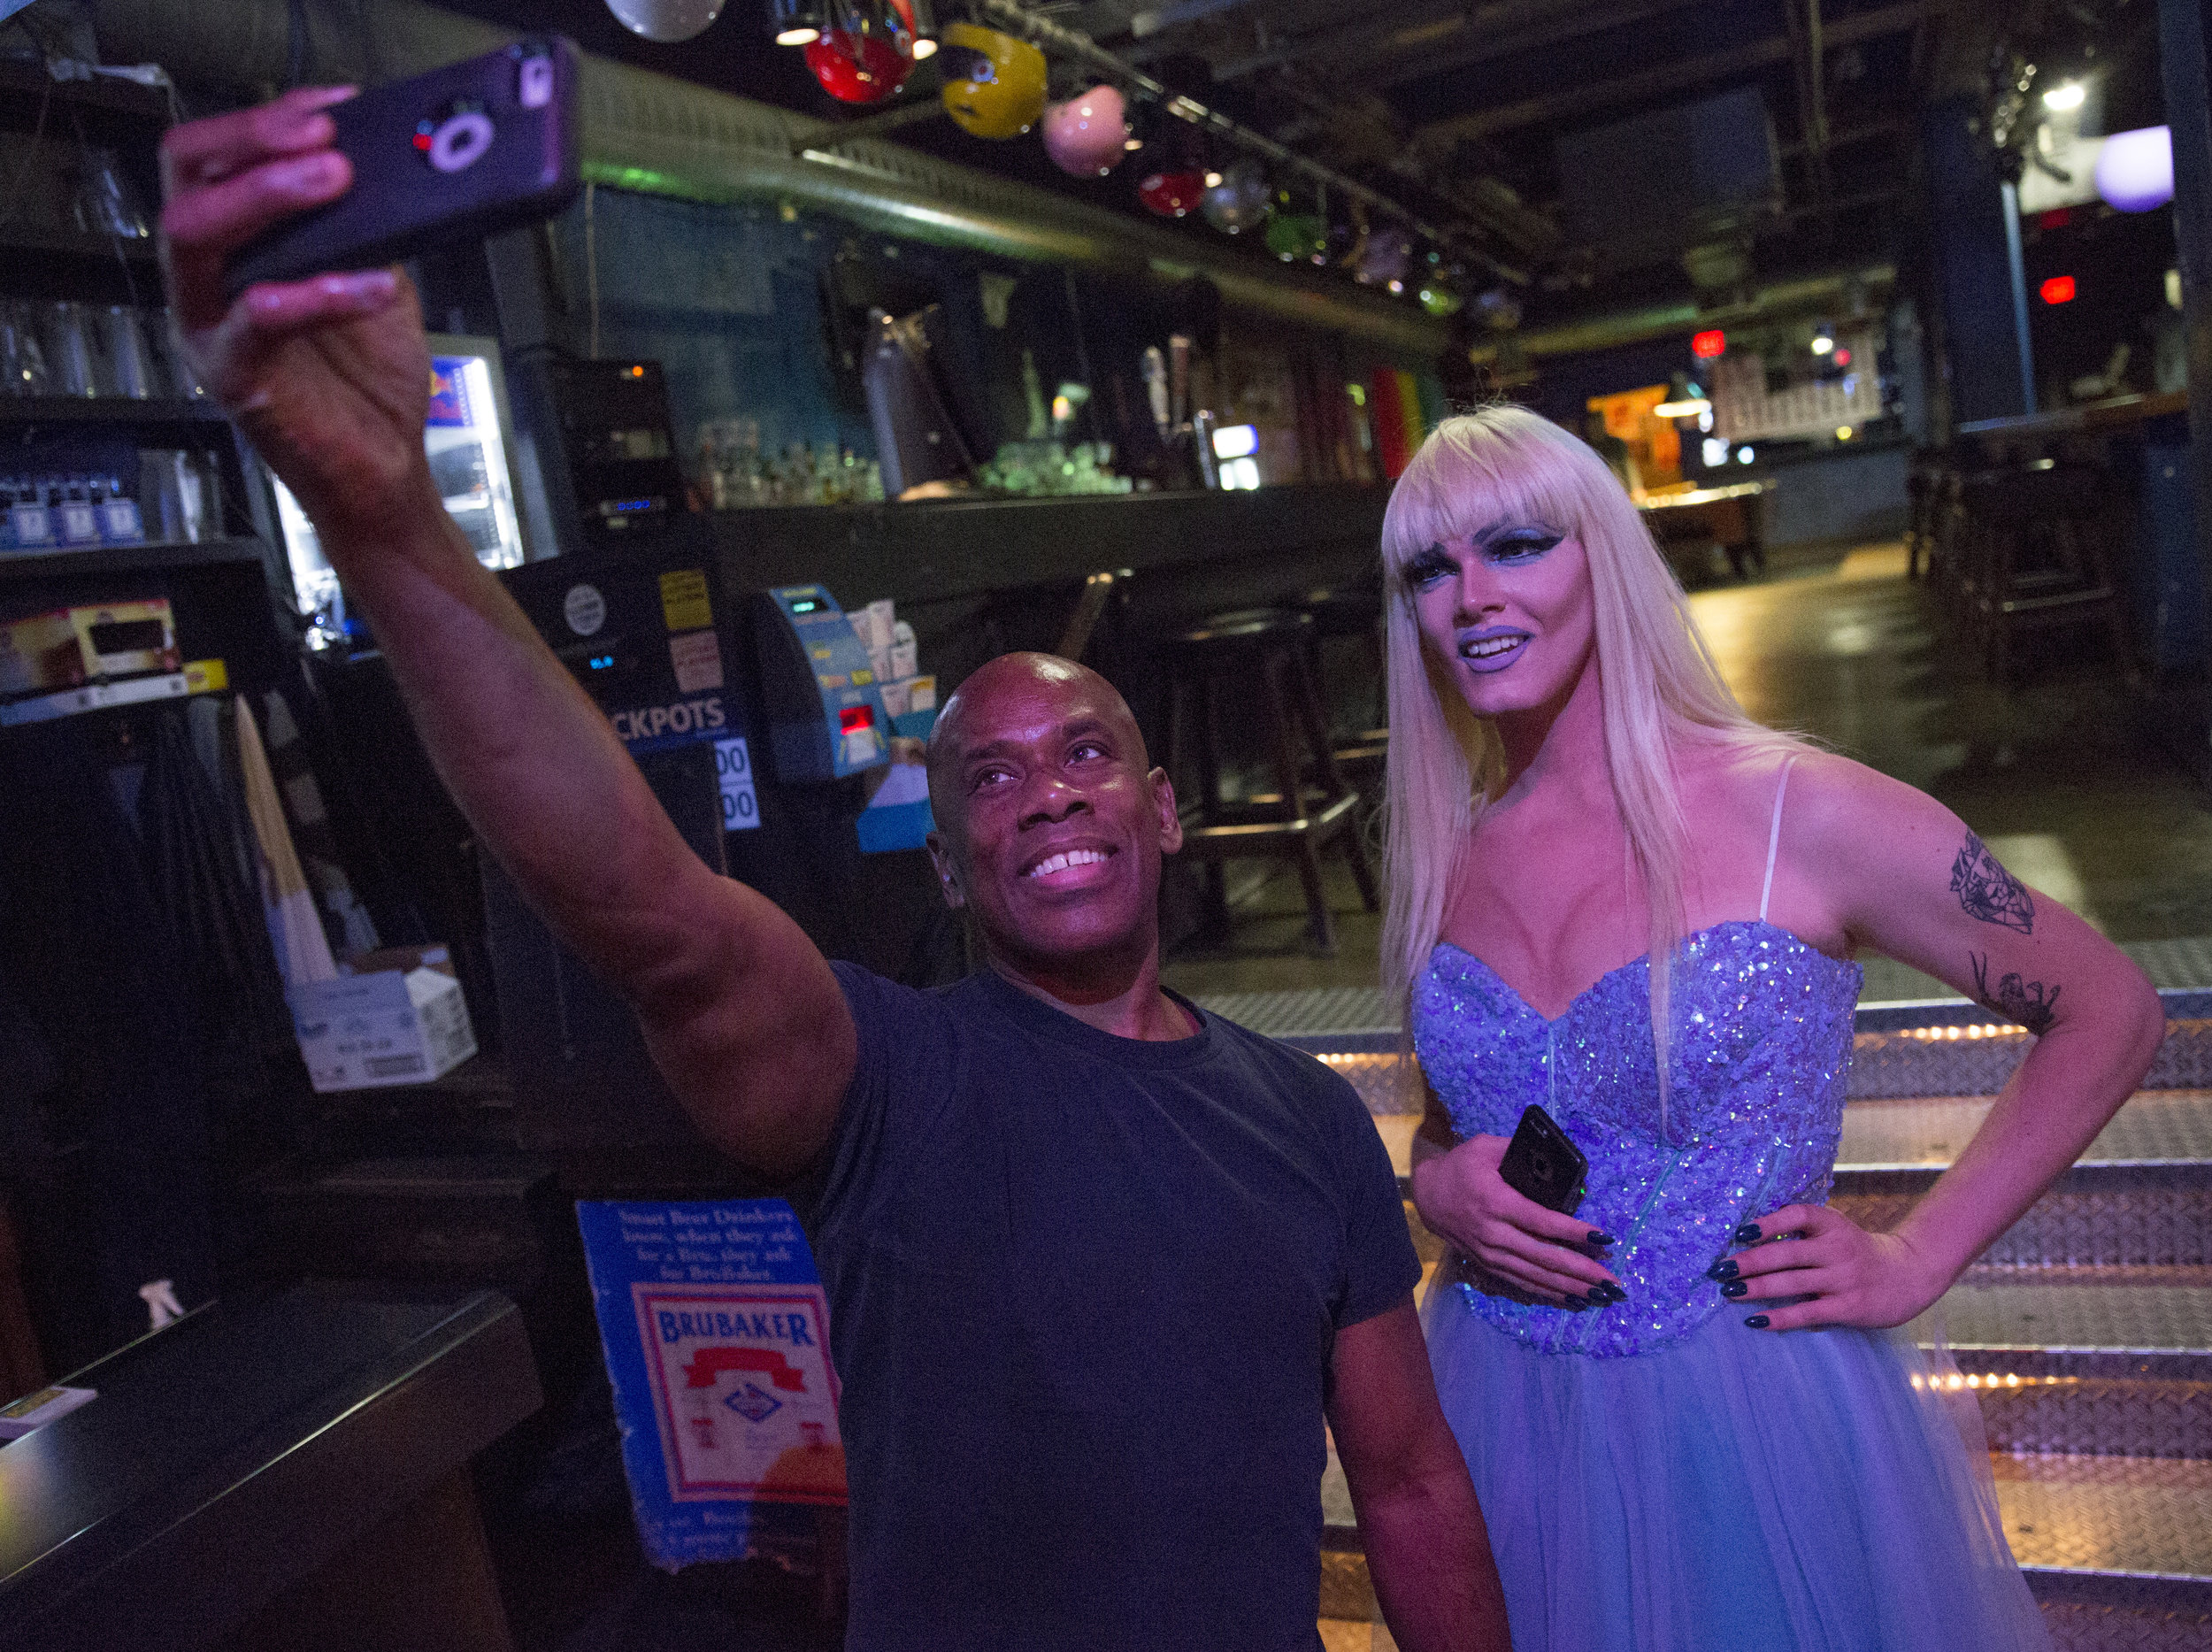 Ophelia poses for a selfie with a Machine Nightclub bartender.